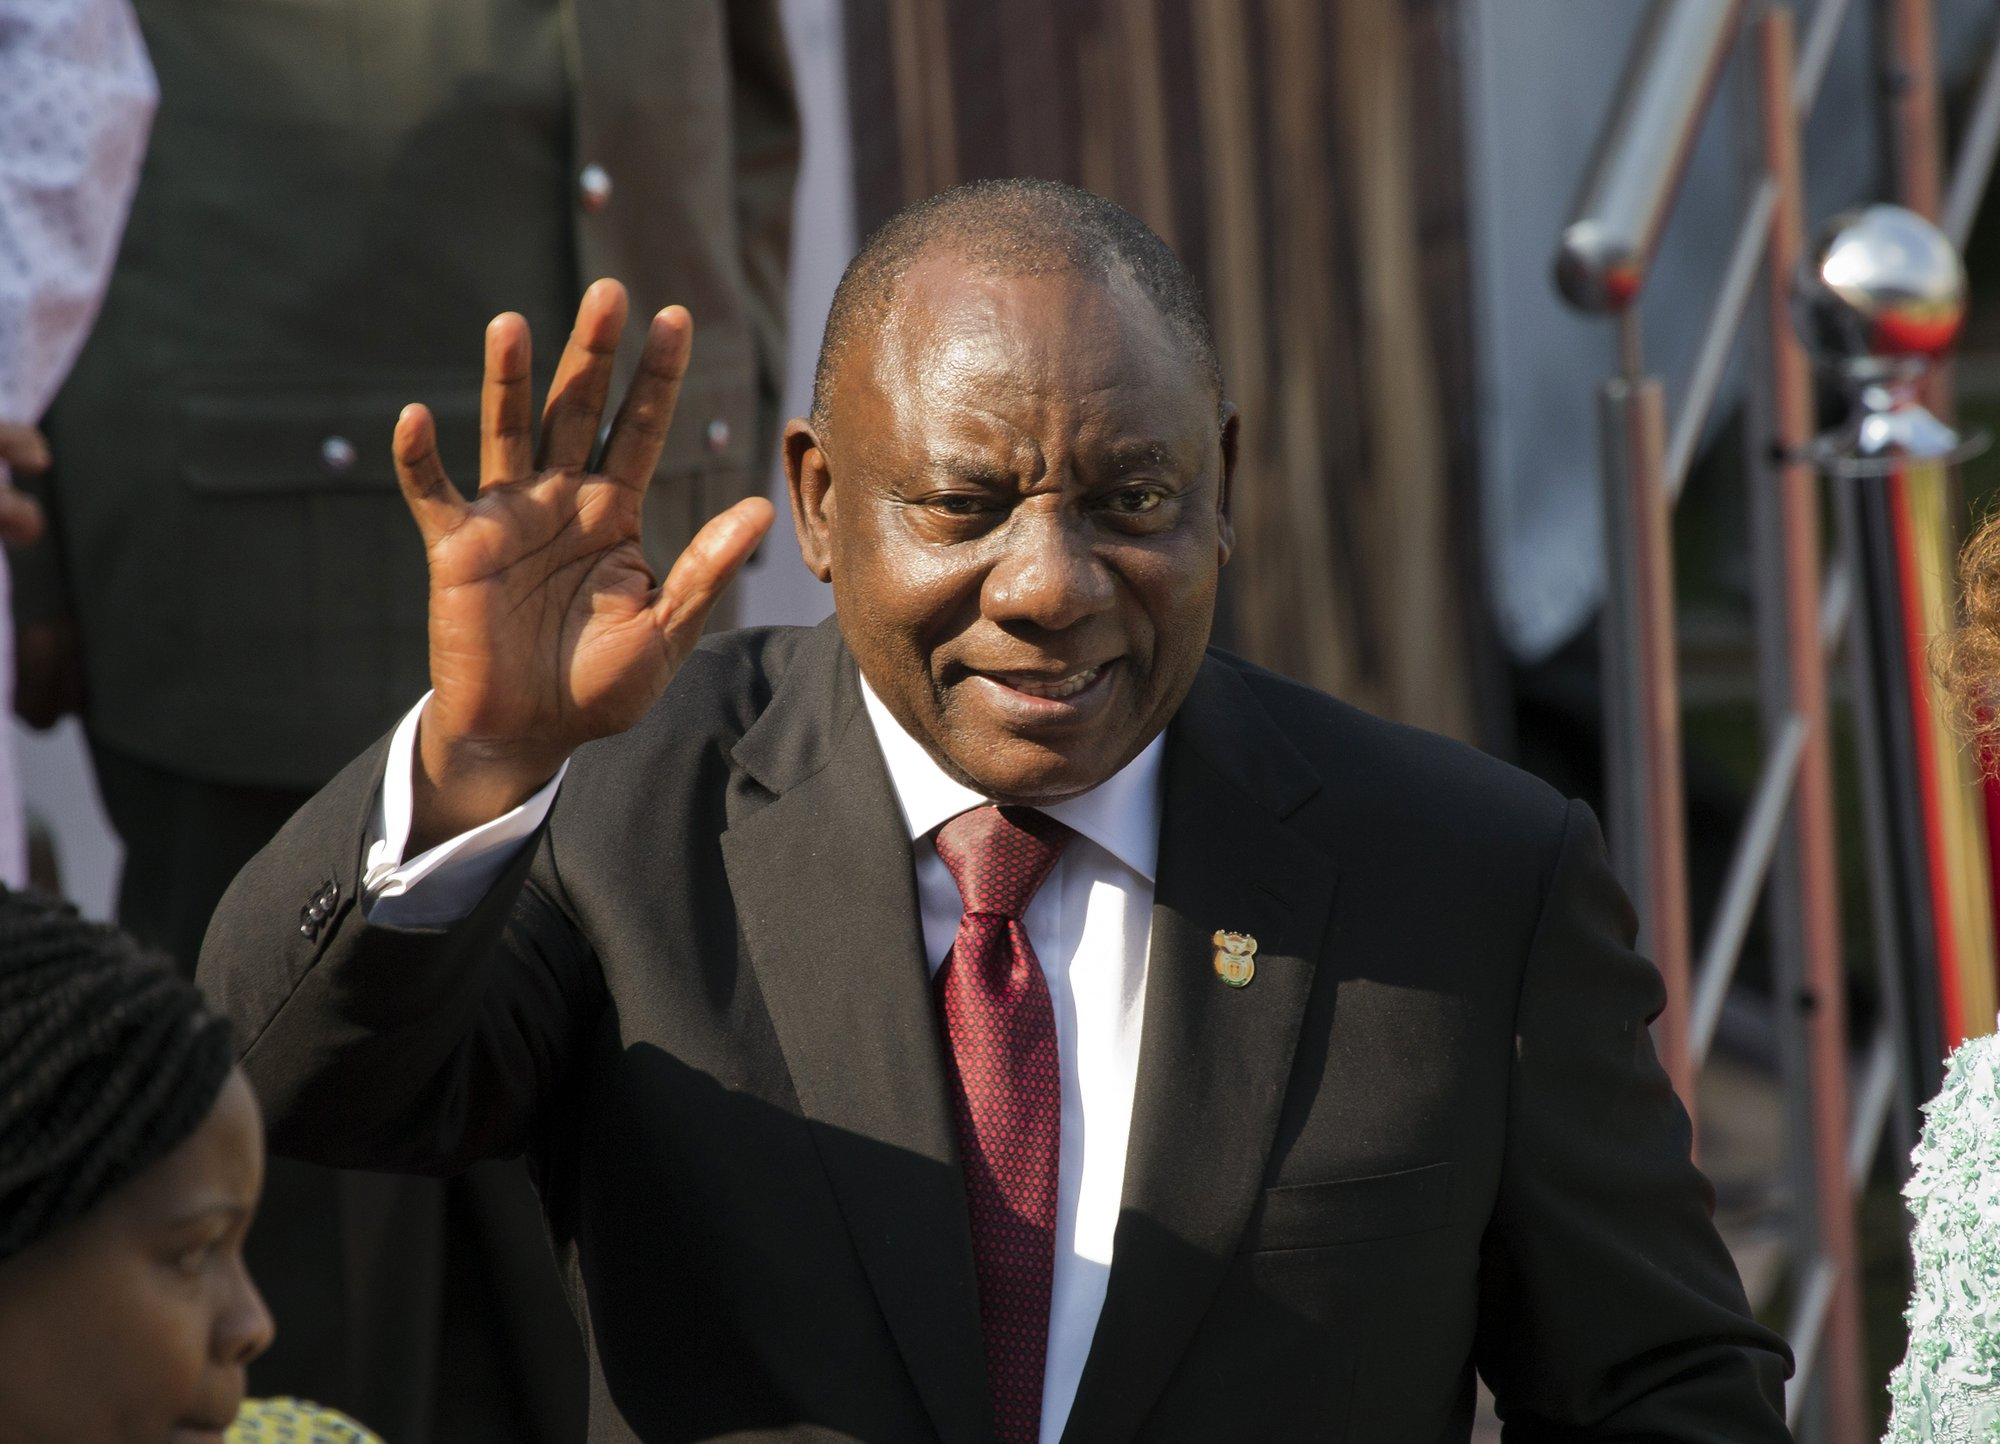 South Africa's president accused of misleading Parliament